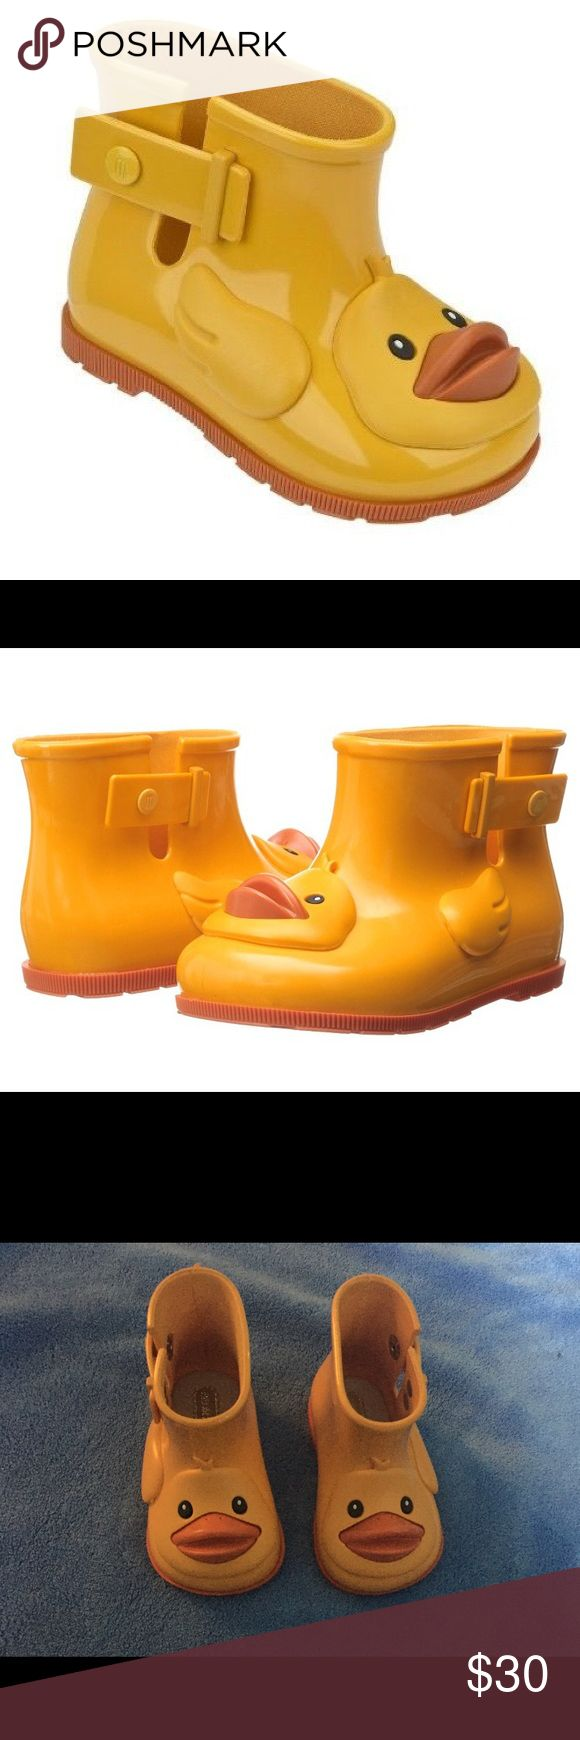 """Mini Melissa """"Sugar Rain II"""" Slip On Welly Boot Size 6 - brand new - son grew out of them before he could even wear these adorable boots -  jelly shoes, made in brazil and 100 percent recyclable - smells great for stinky toes :) Mini Melissa Shoes Rain & Snow Boots"""